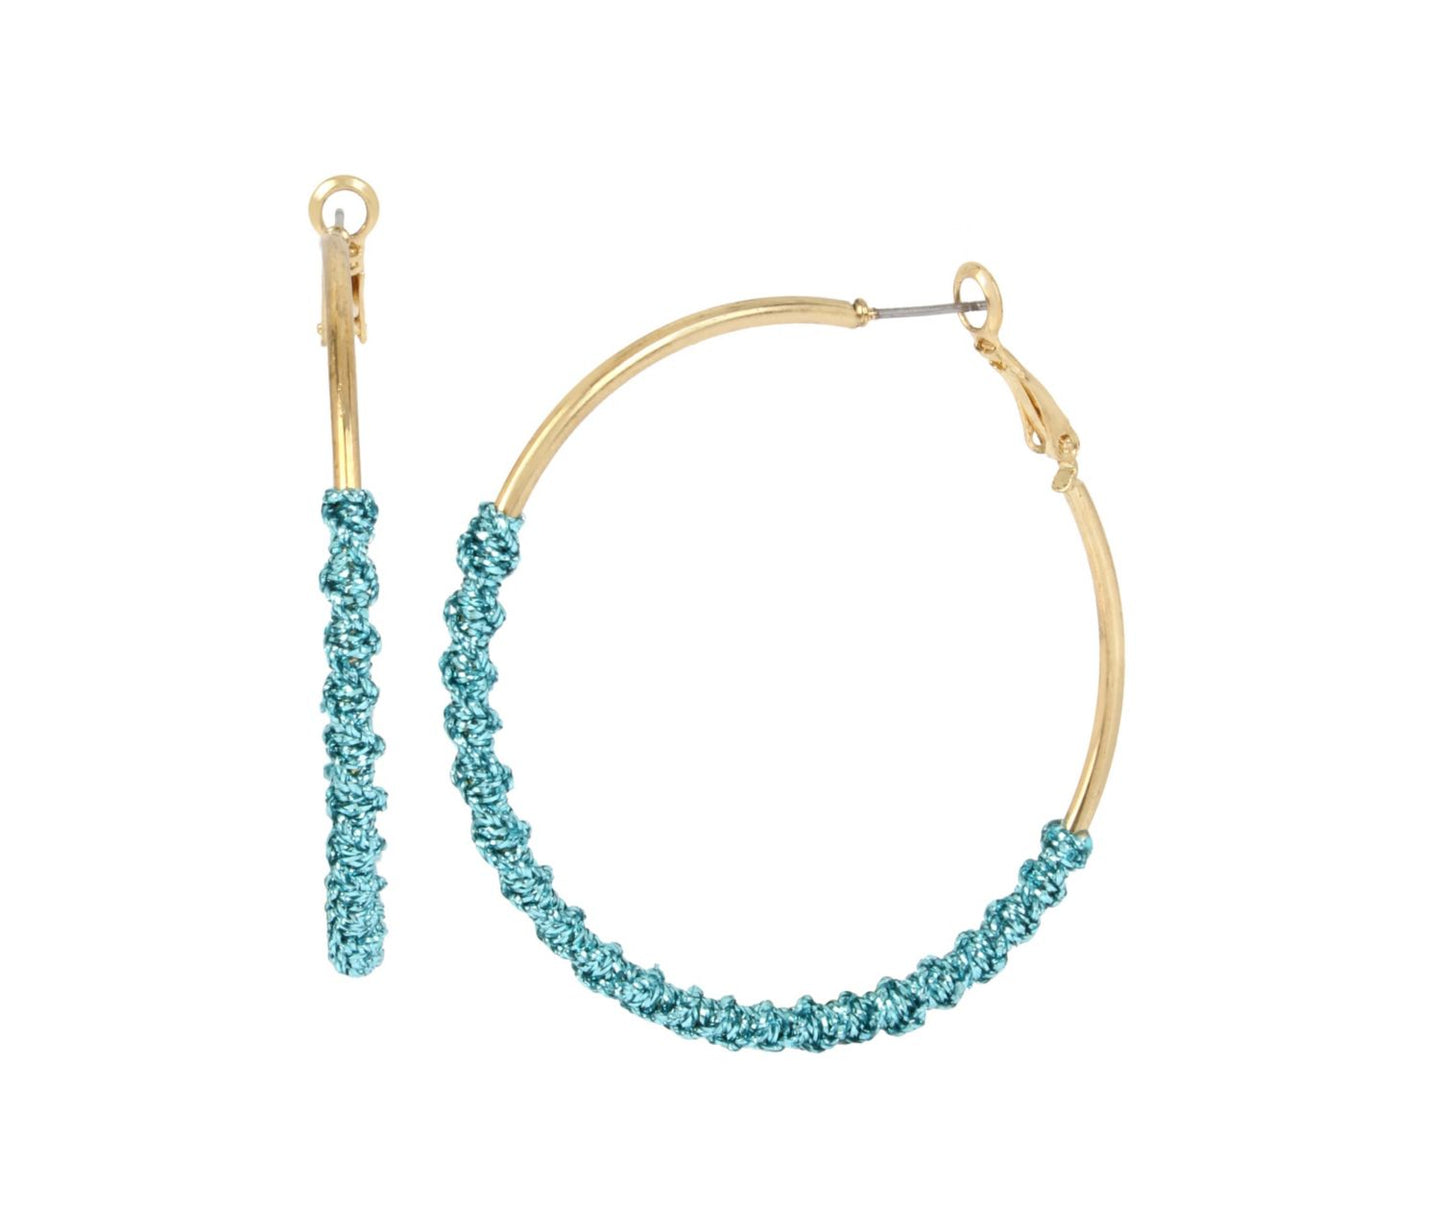 HOOP MAGIC TEAL TWIST EARRINGS TEAL - JEWELRY - Betsey Johnson